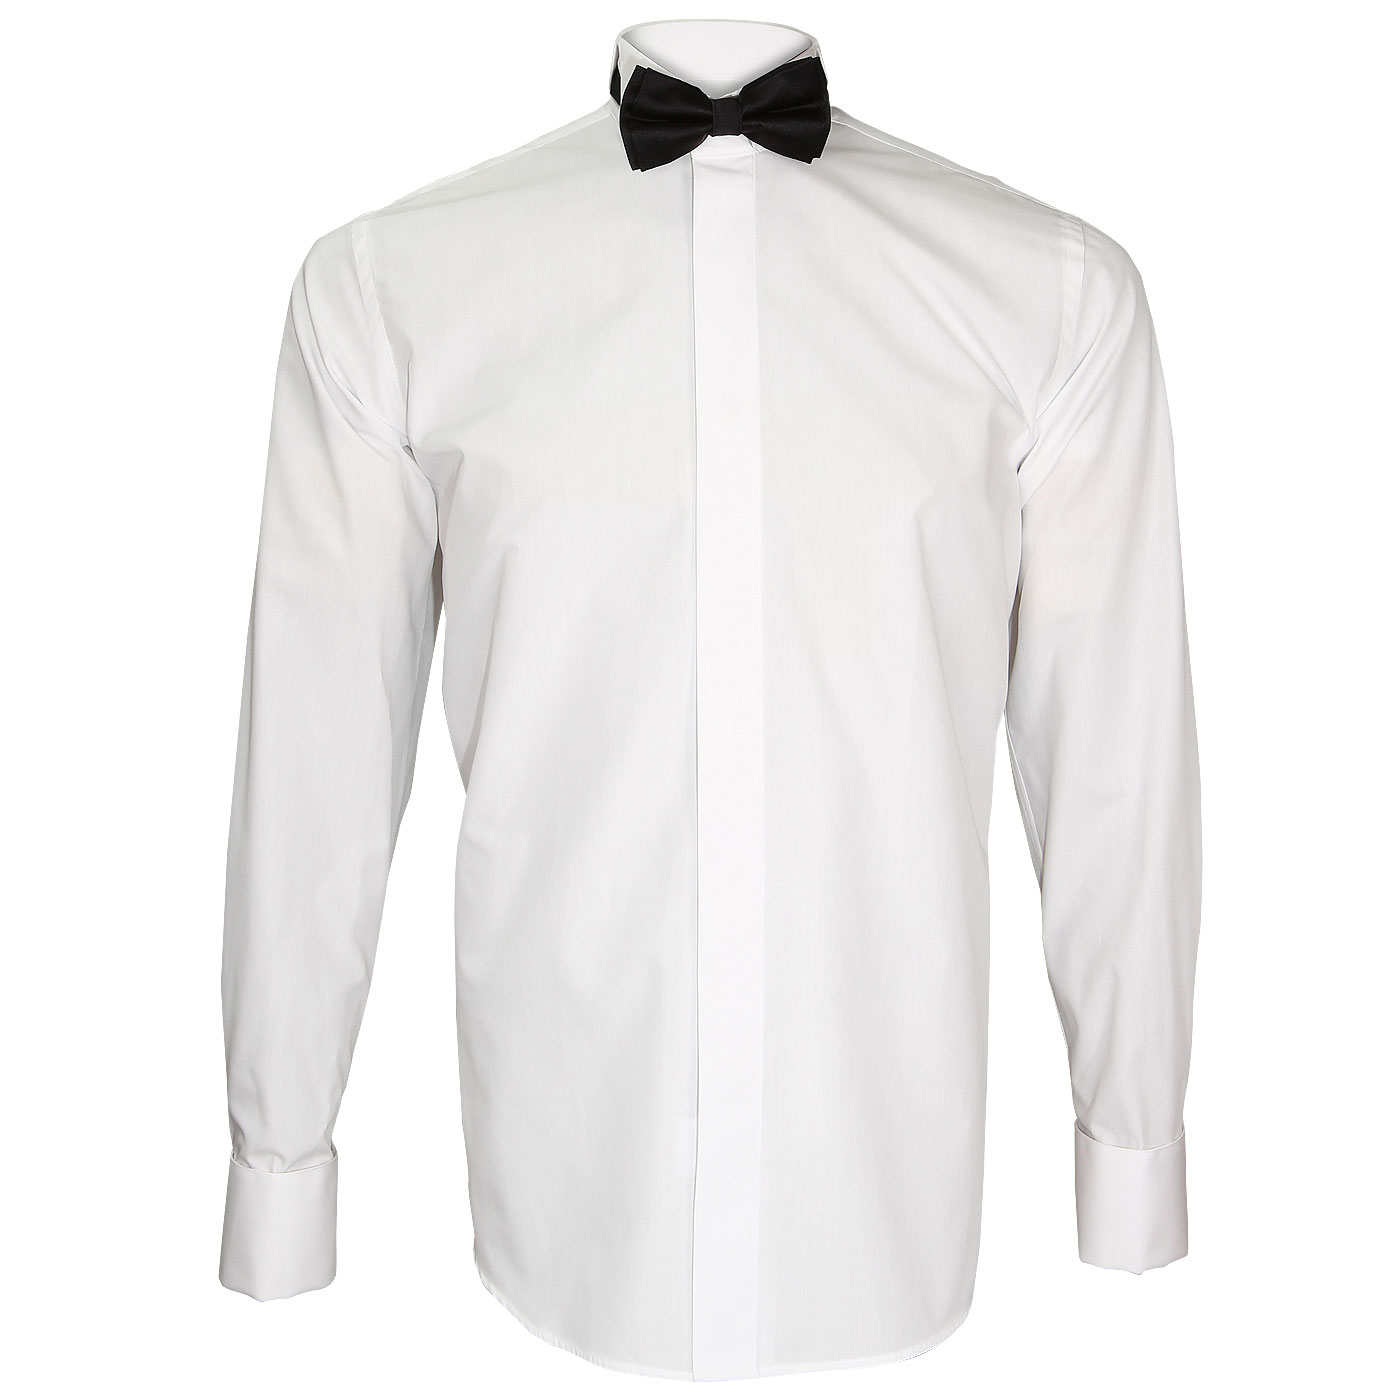 French Cuffs Shirt  High Quality for Men